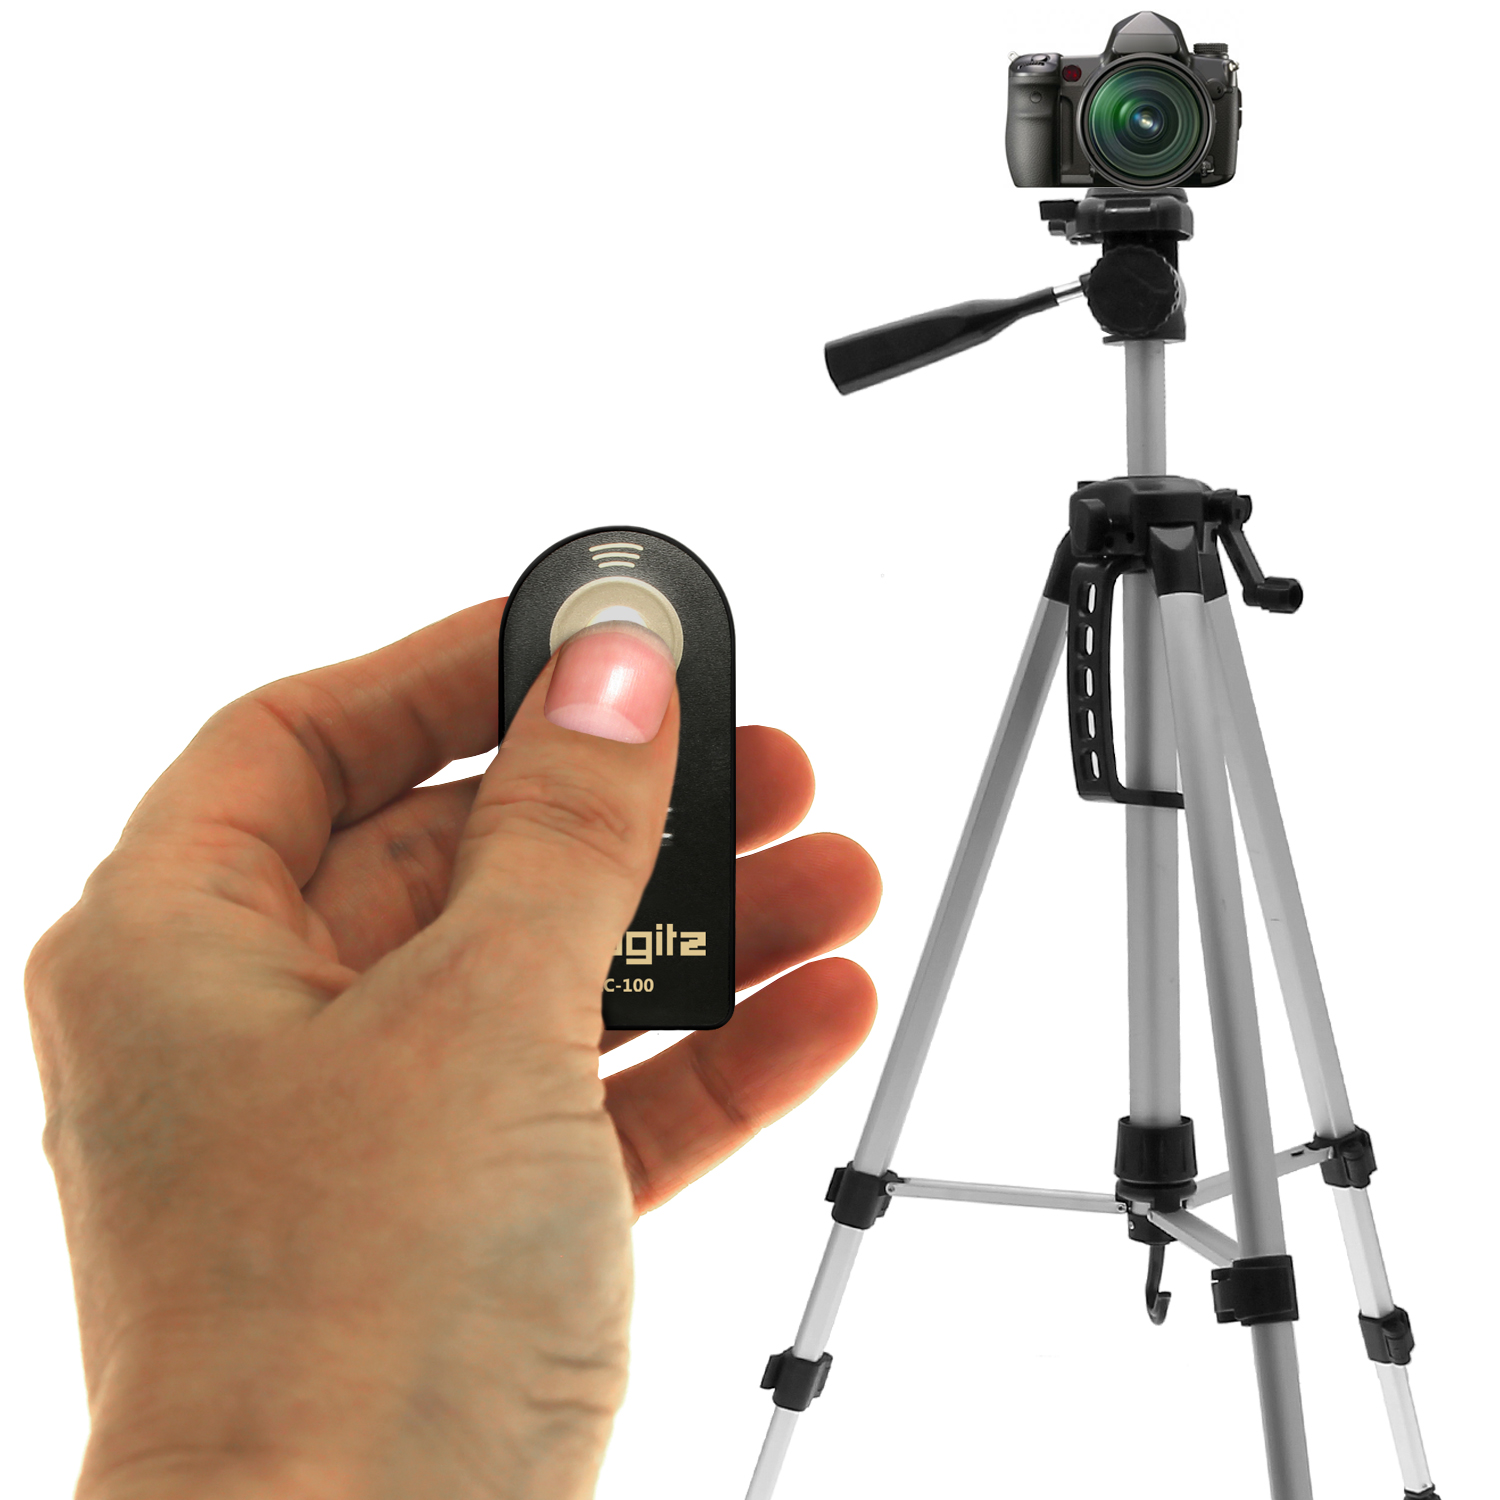 Igadgitz Infrared Wireless Remote Control Shutter Trigger